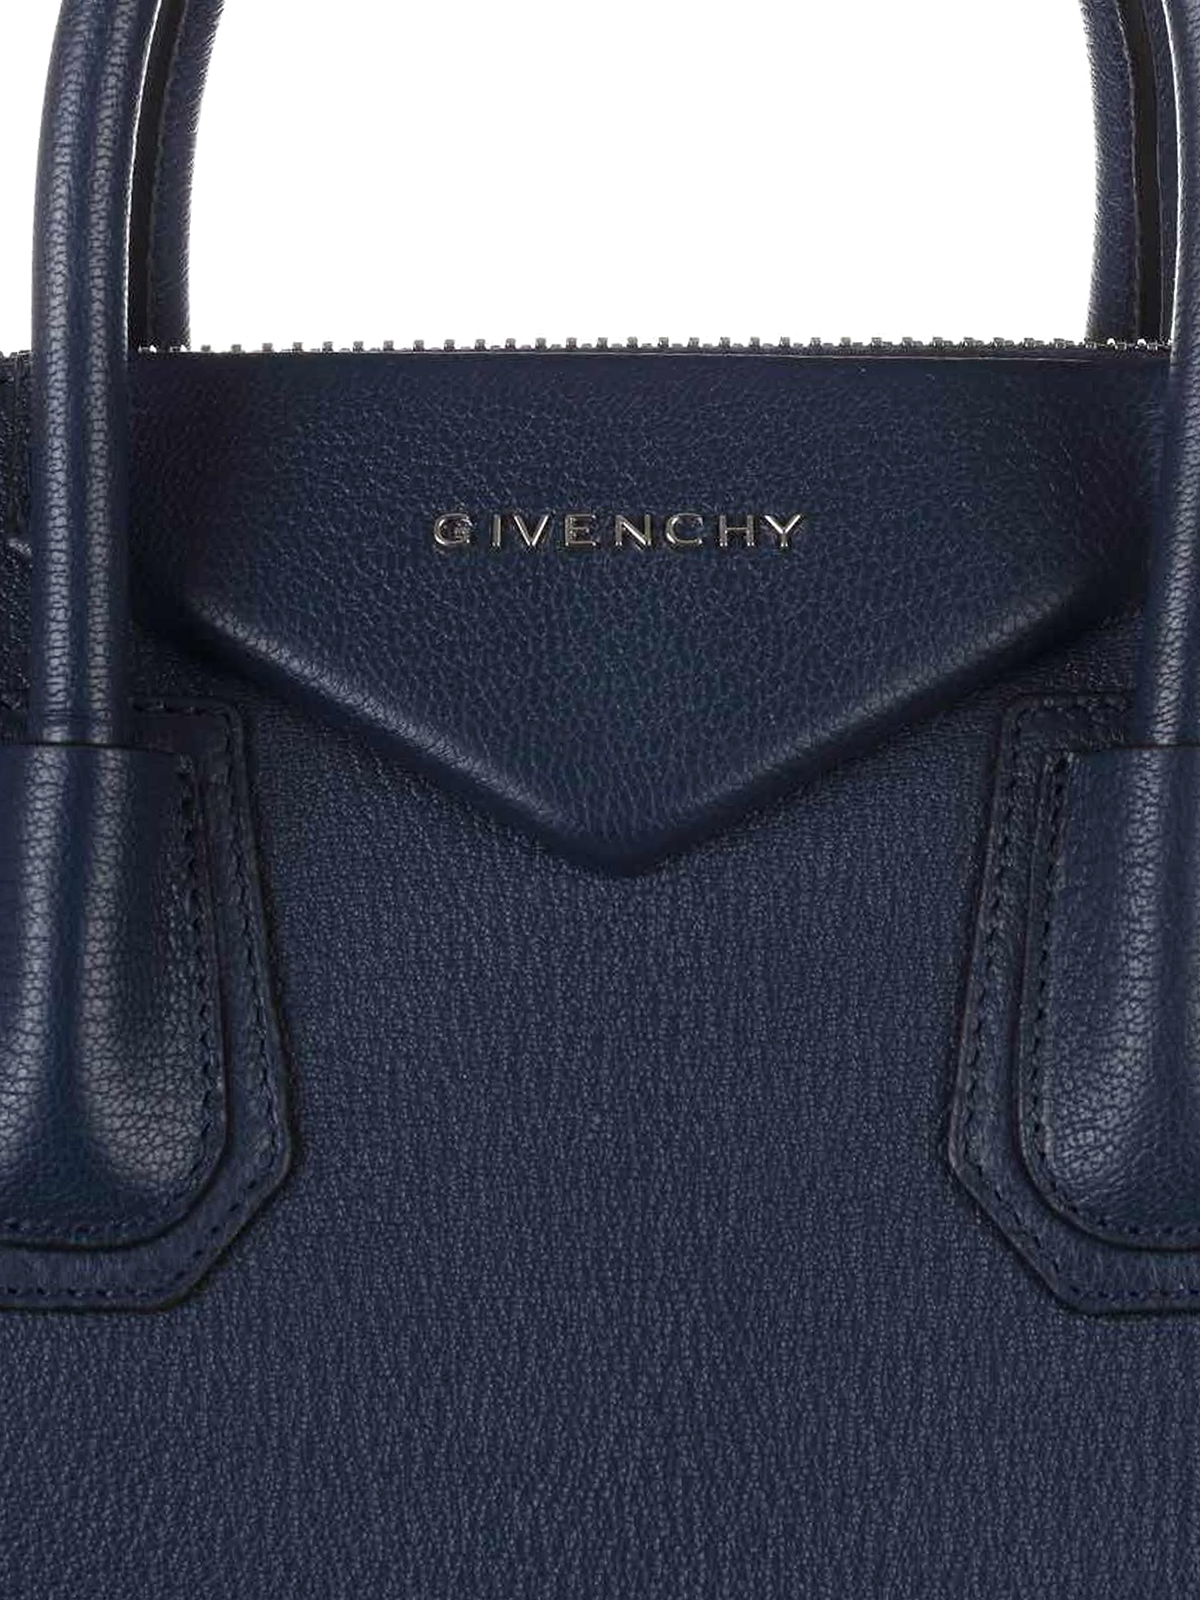 c5029139b035 Givenchy - Antigona medium blue leather bag - bowling bags ...